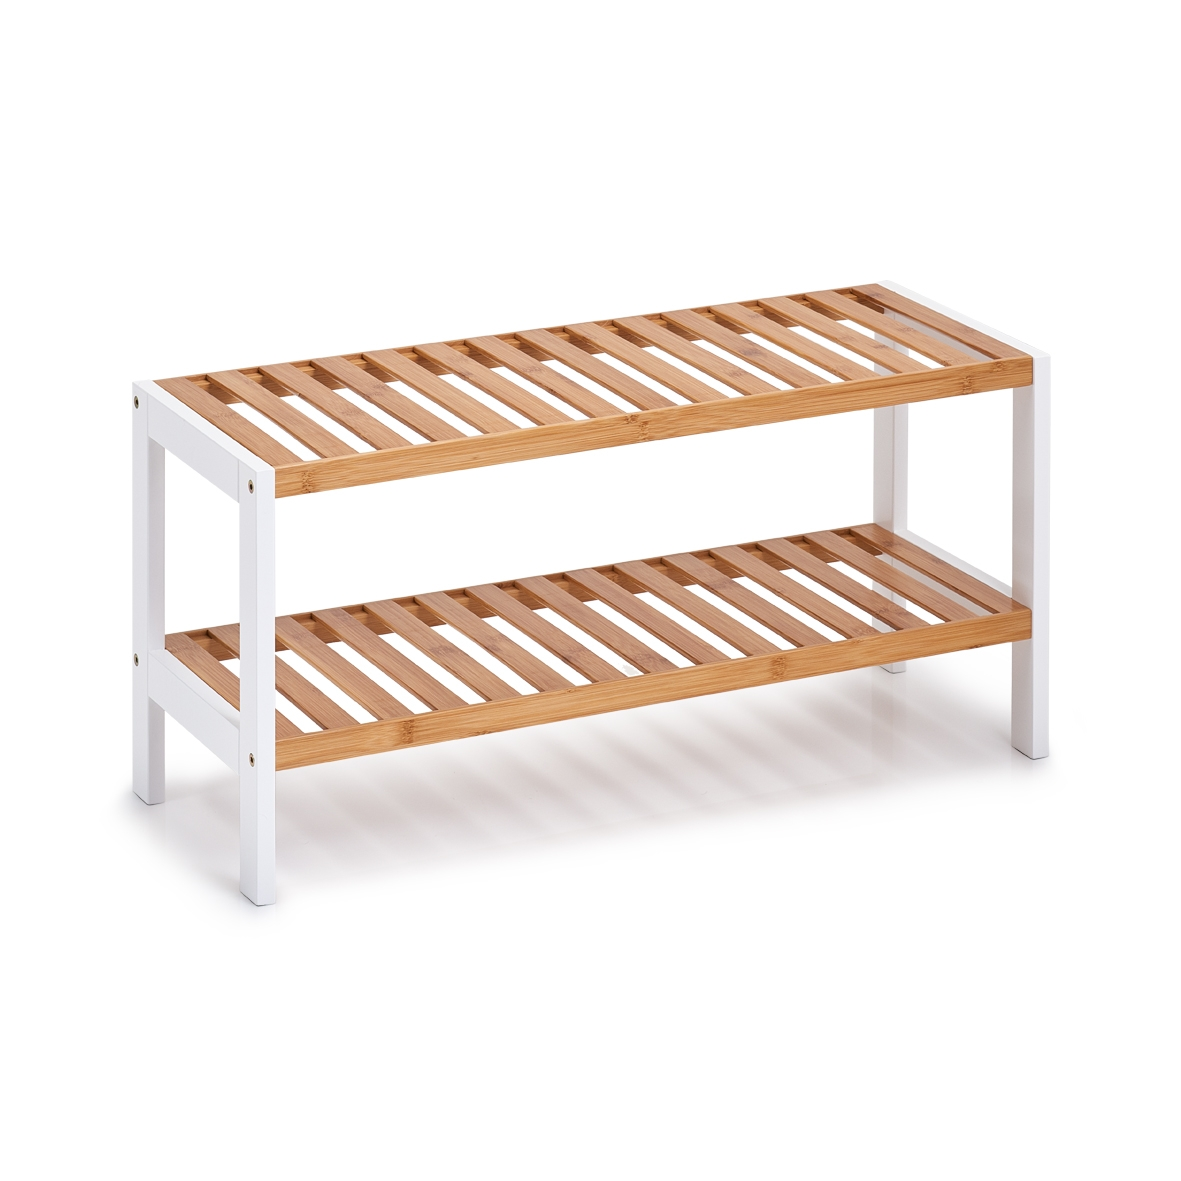 Suport pentru incaltaminte, din bambus si MDF 2-Bamboo White, l70xA26xH33 cm somproduct.ro